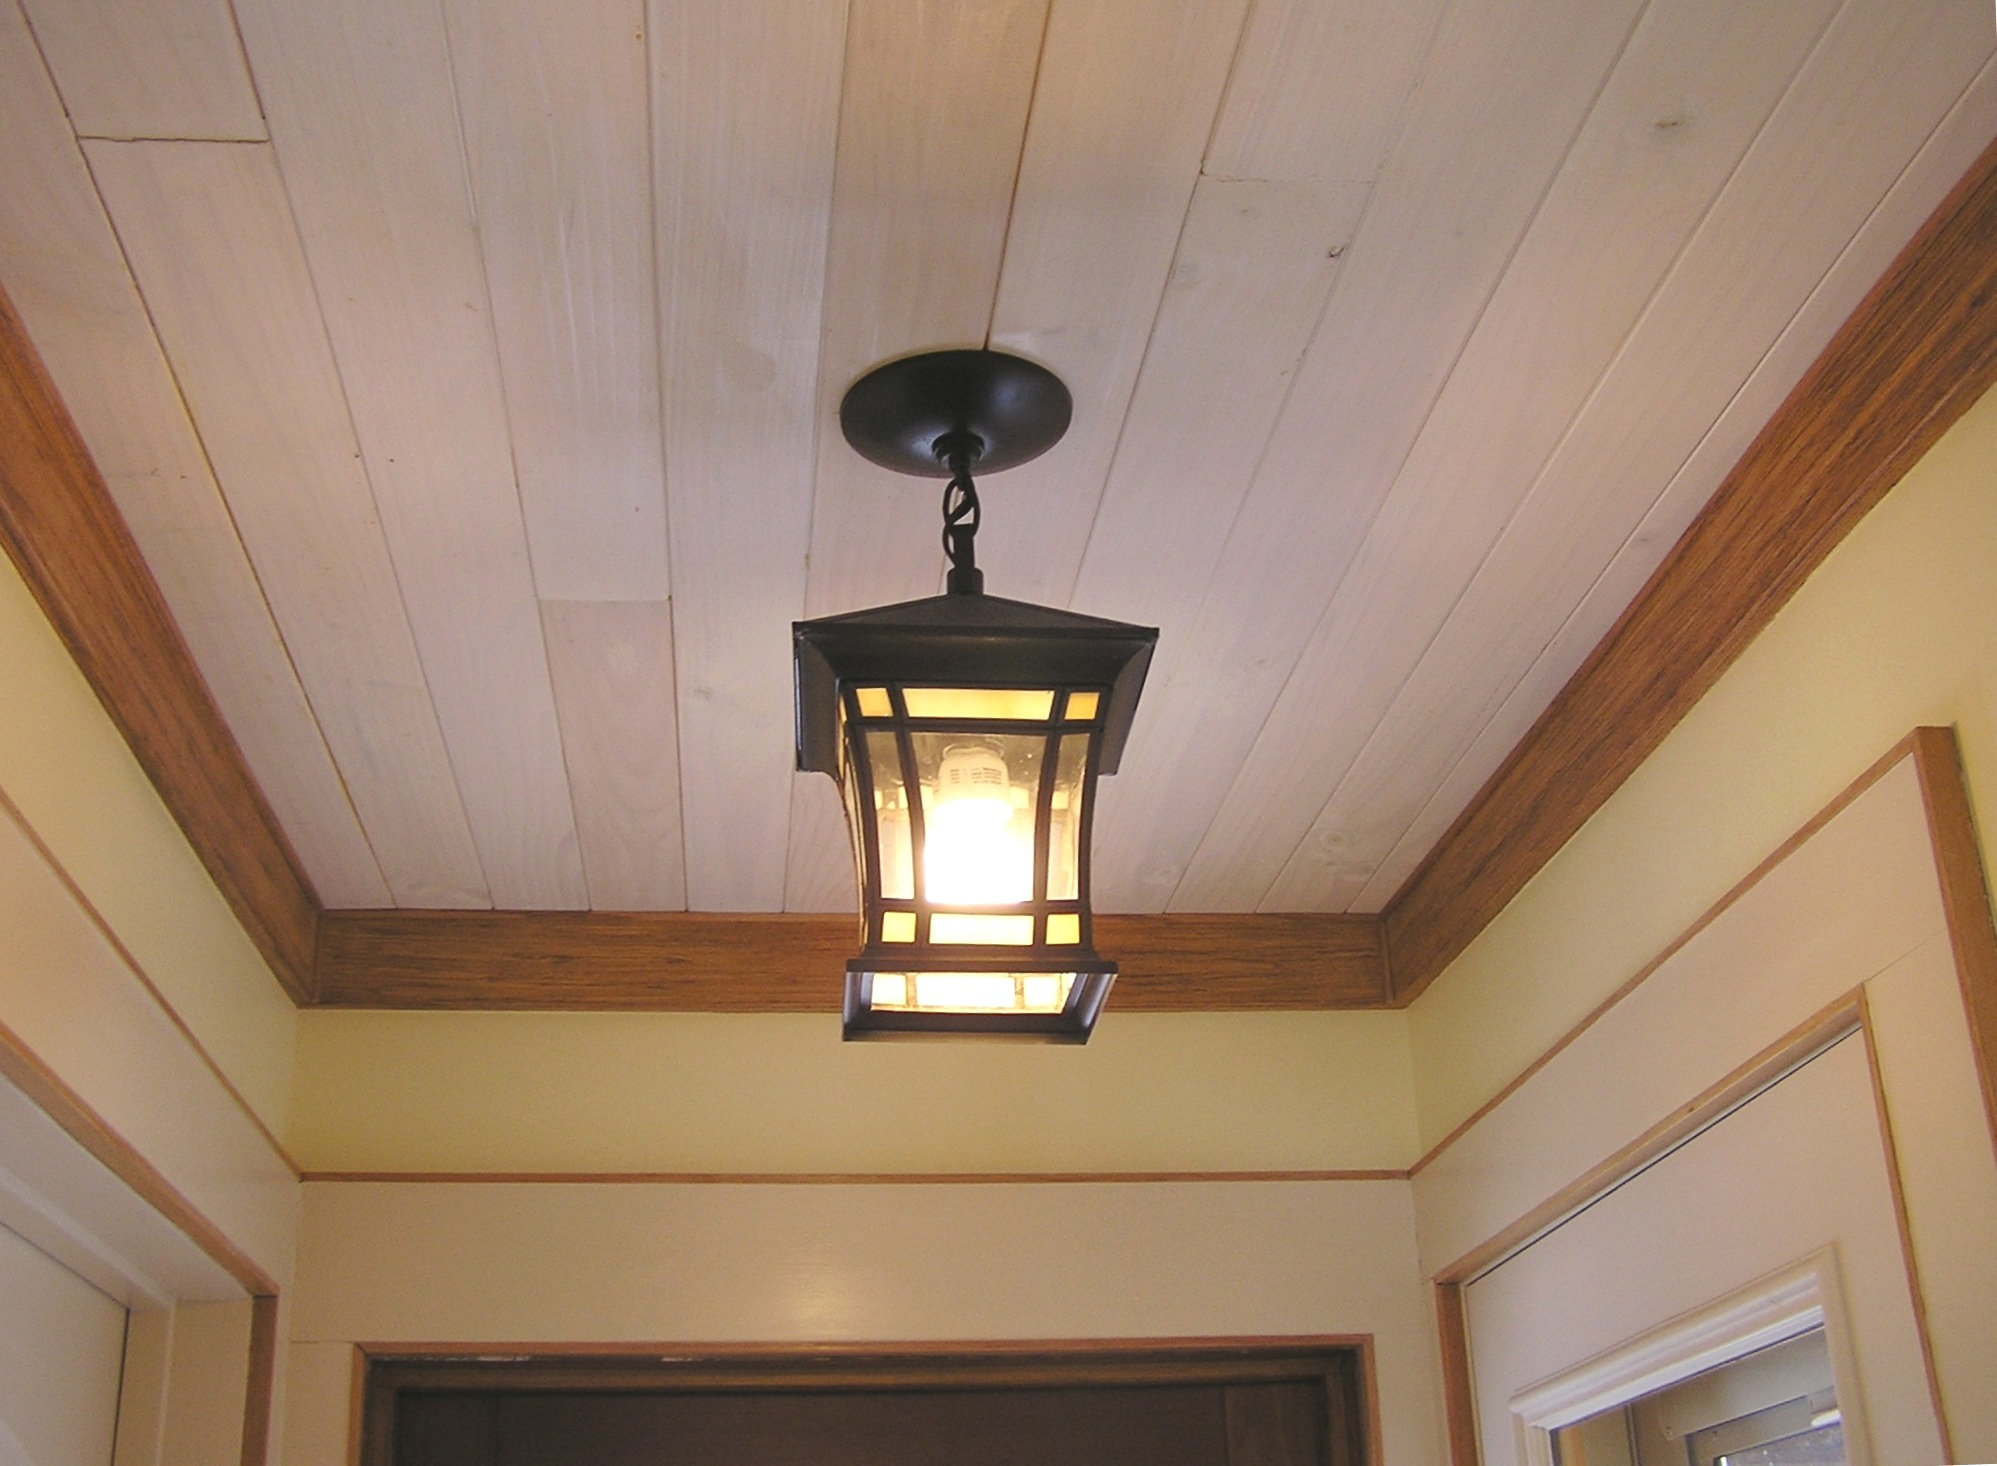 Design Ceiling Trim Ideas a remodel with greek theme fros carpentry trim and ceiling details